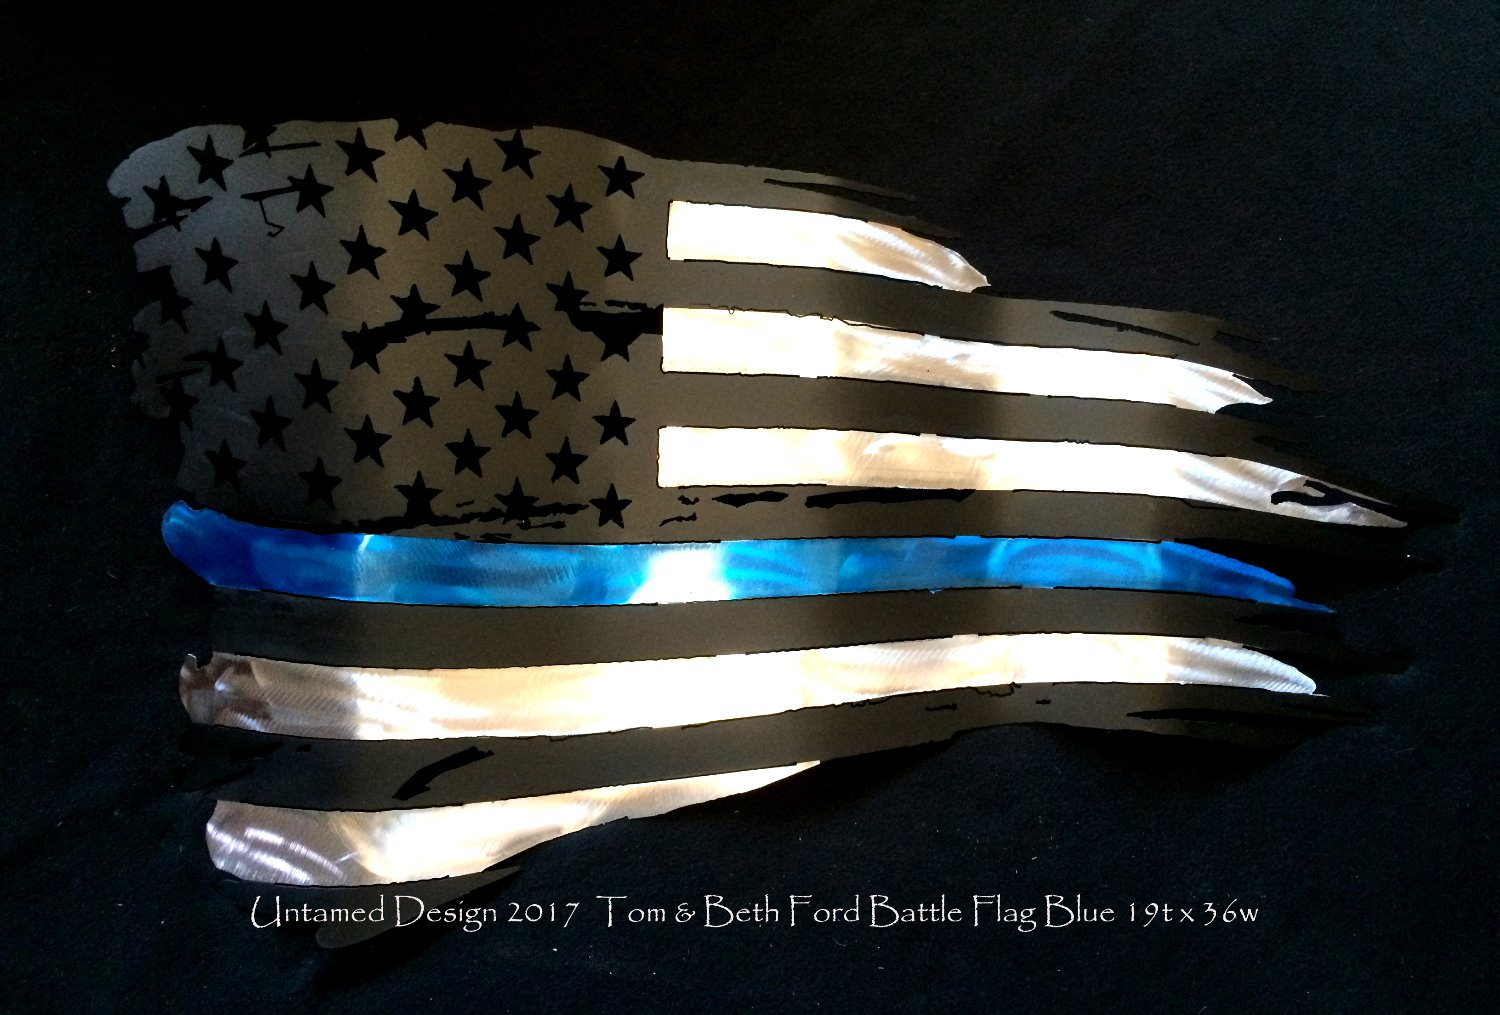 Battle Flag Blue Line